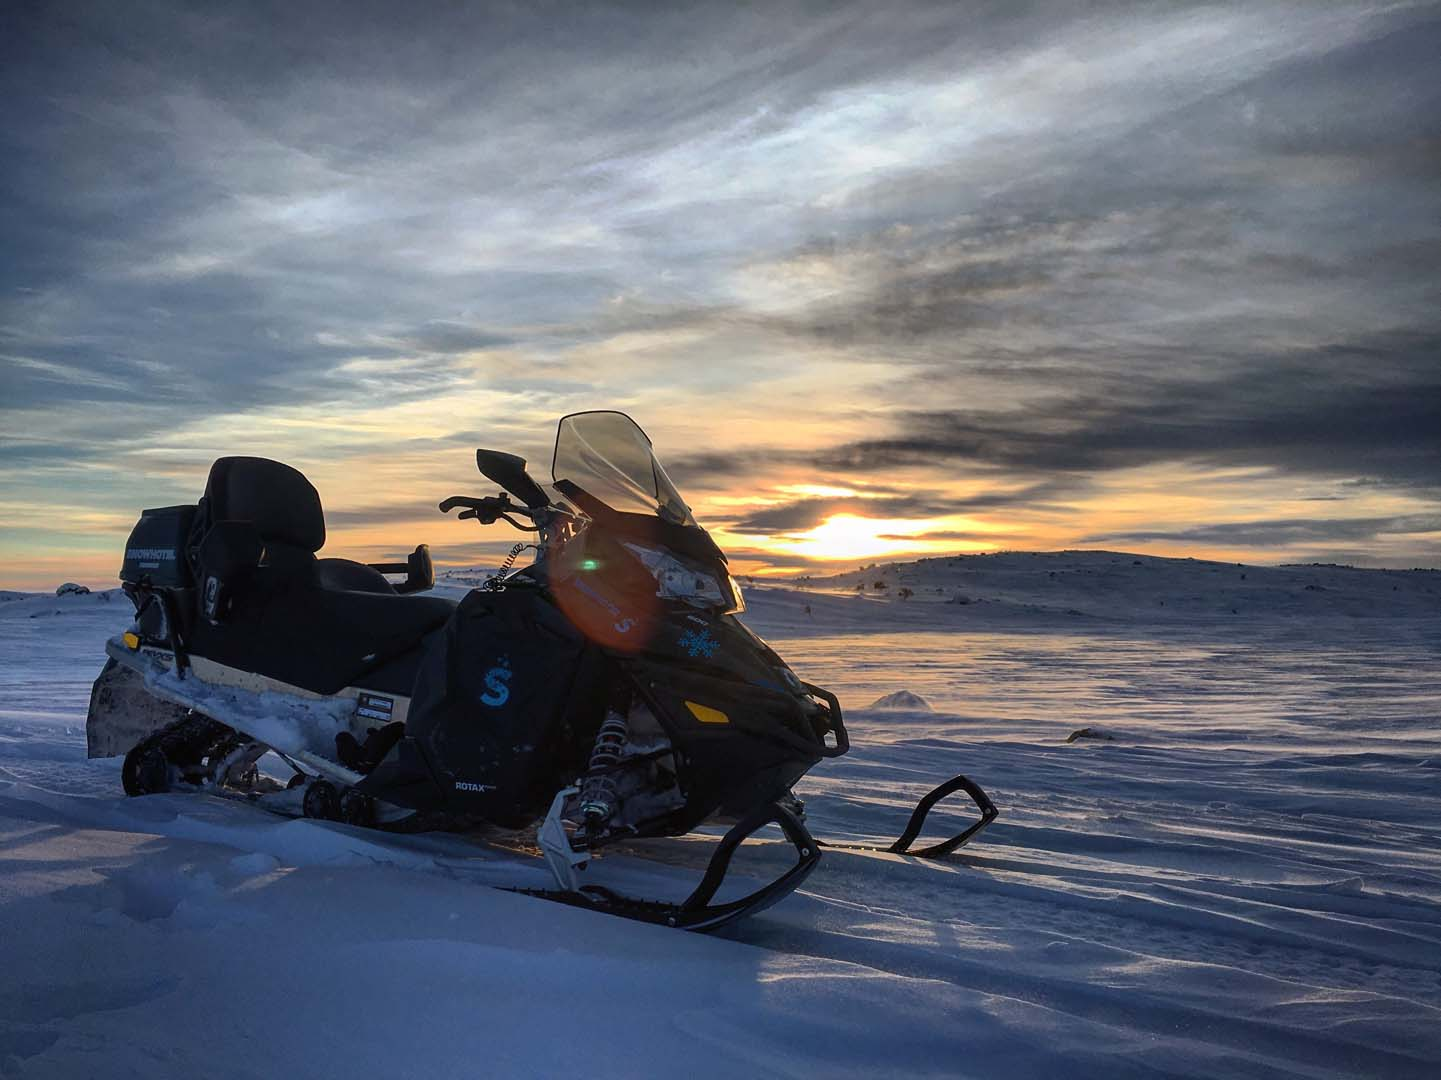 Snowmobiling into an arctic sunset in Norway